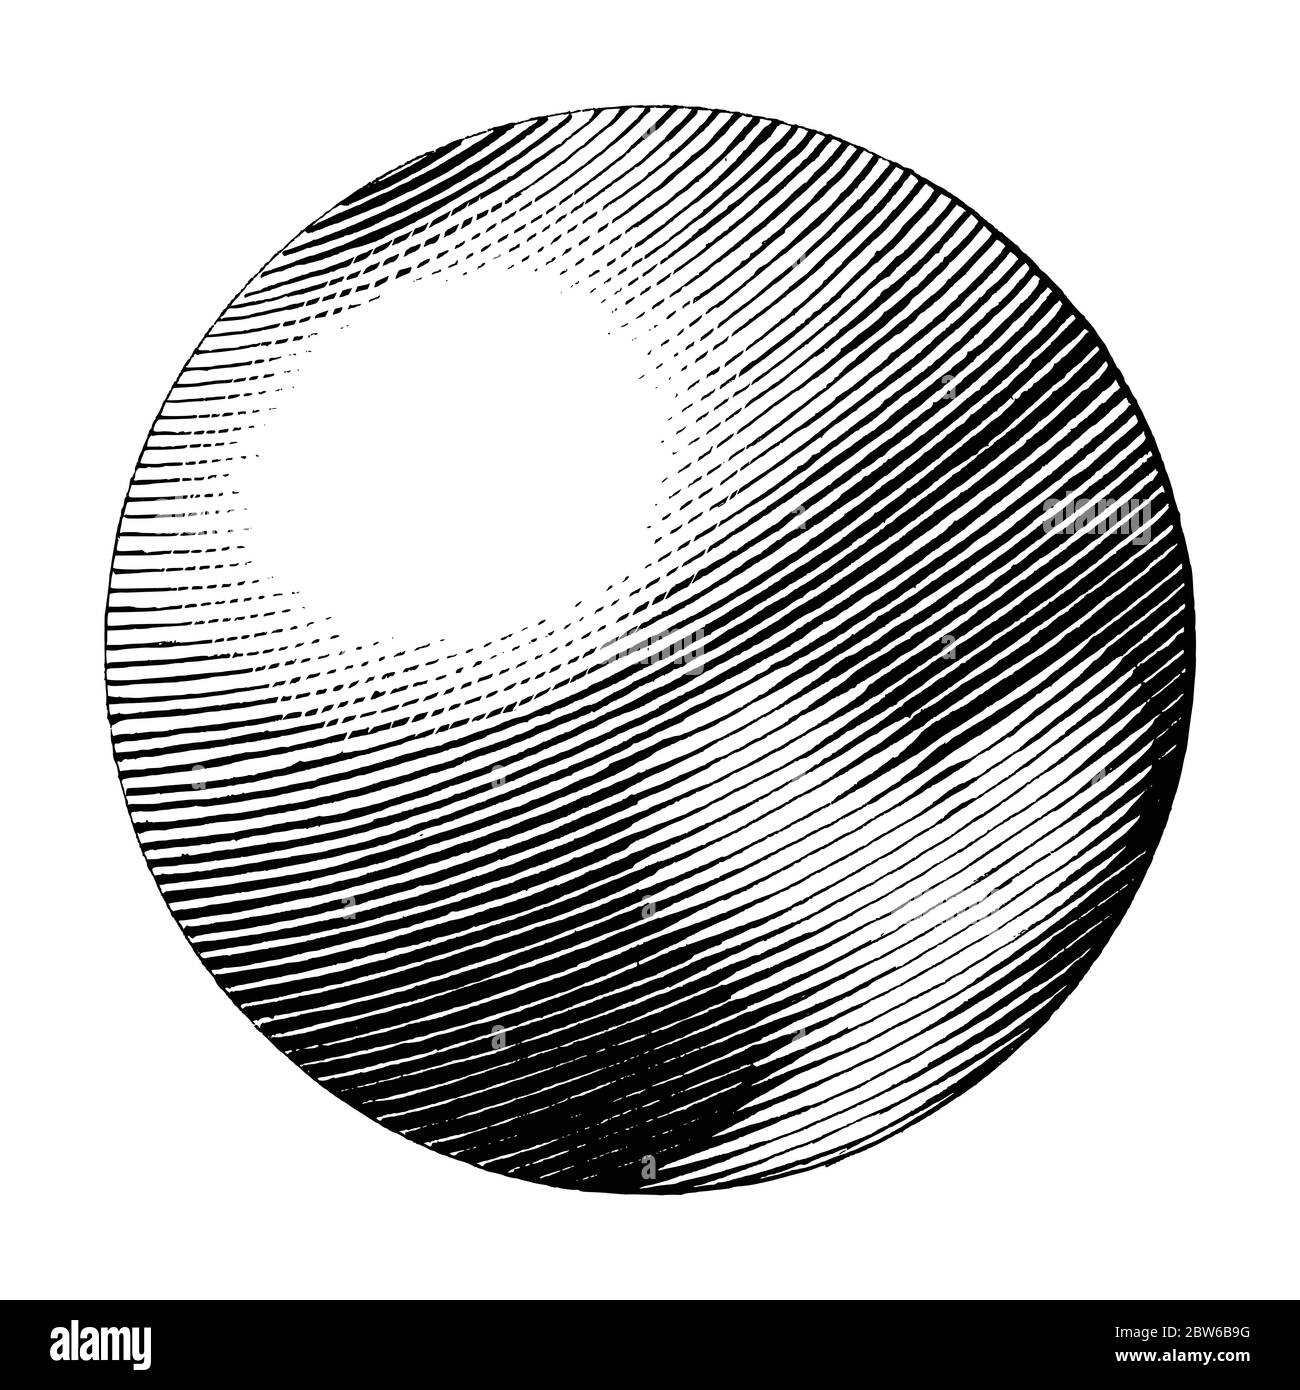 Pluto hand drawing vintage style black and white clipart isolated on white background. The planet in solar system Stock Vector